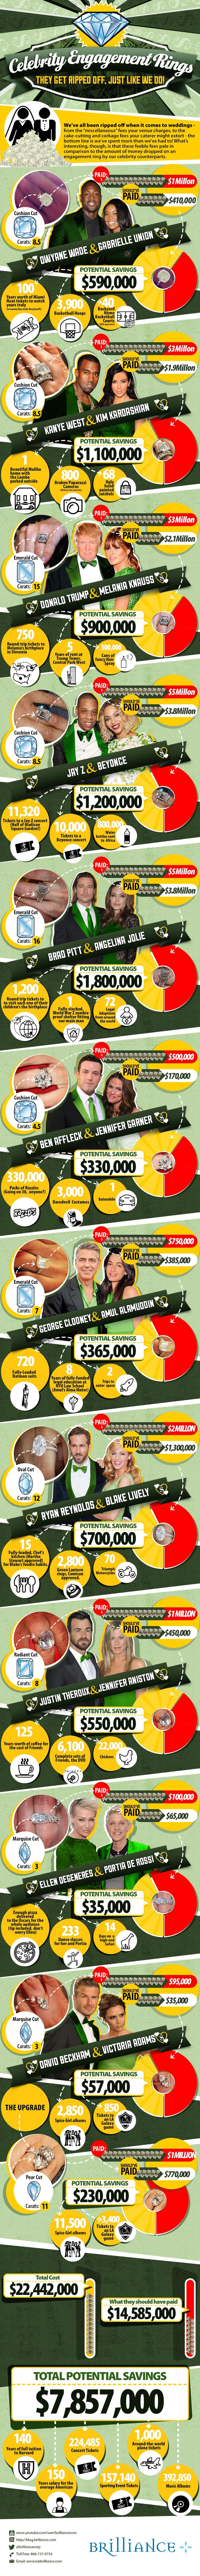 "Celebrity Engagement Rings Infographic – They Get Ripped Off, Just Like Us! We've all been ripped off when it comes to weddings - from the ""miscellaneous"" fees your venue charges, to the cake-cutting and corkage fees your caterer might extort - the bottom line is we've spent more than we've had to! What's interesting. though, is that these feeble fees pale in comparison to the amount of money dropped on an engagement ring by our celebrity counterparts. http://www.brilliance.com"